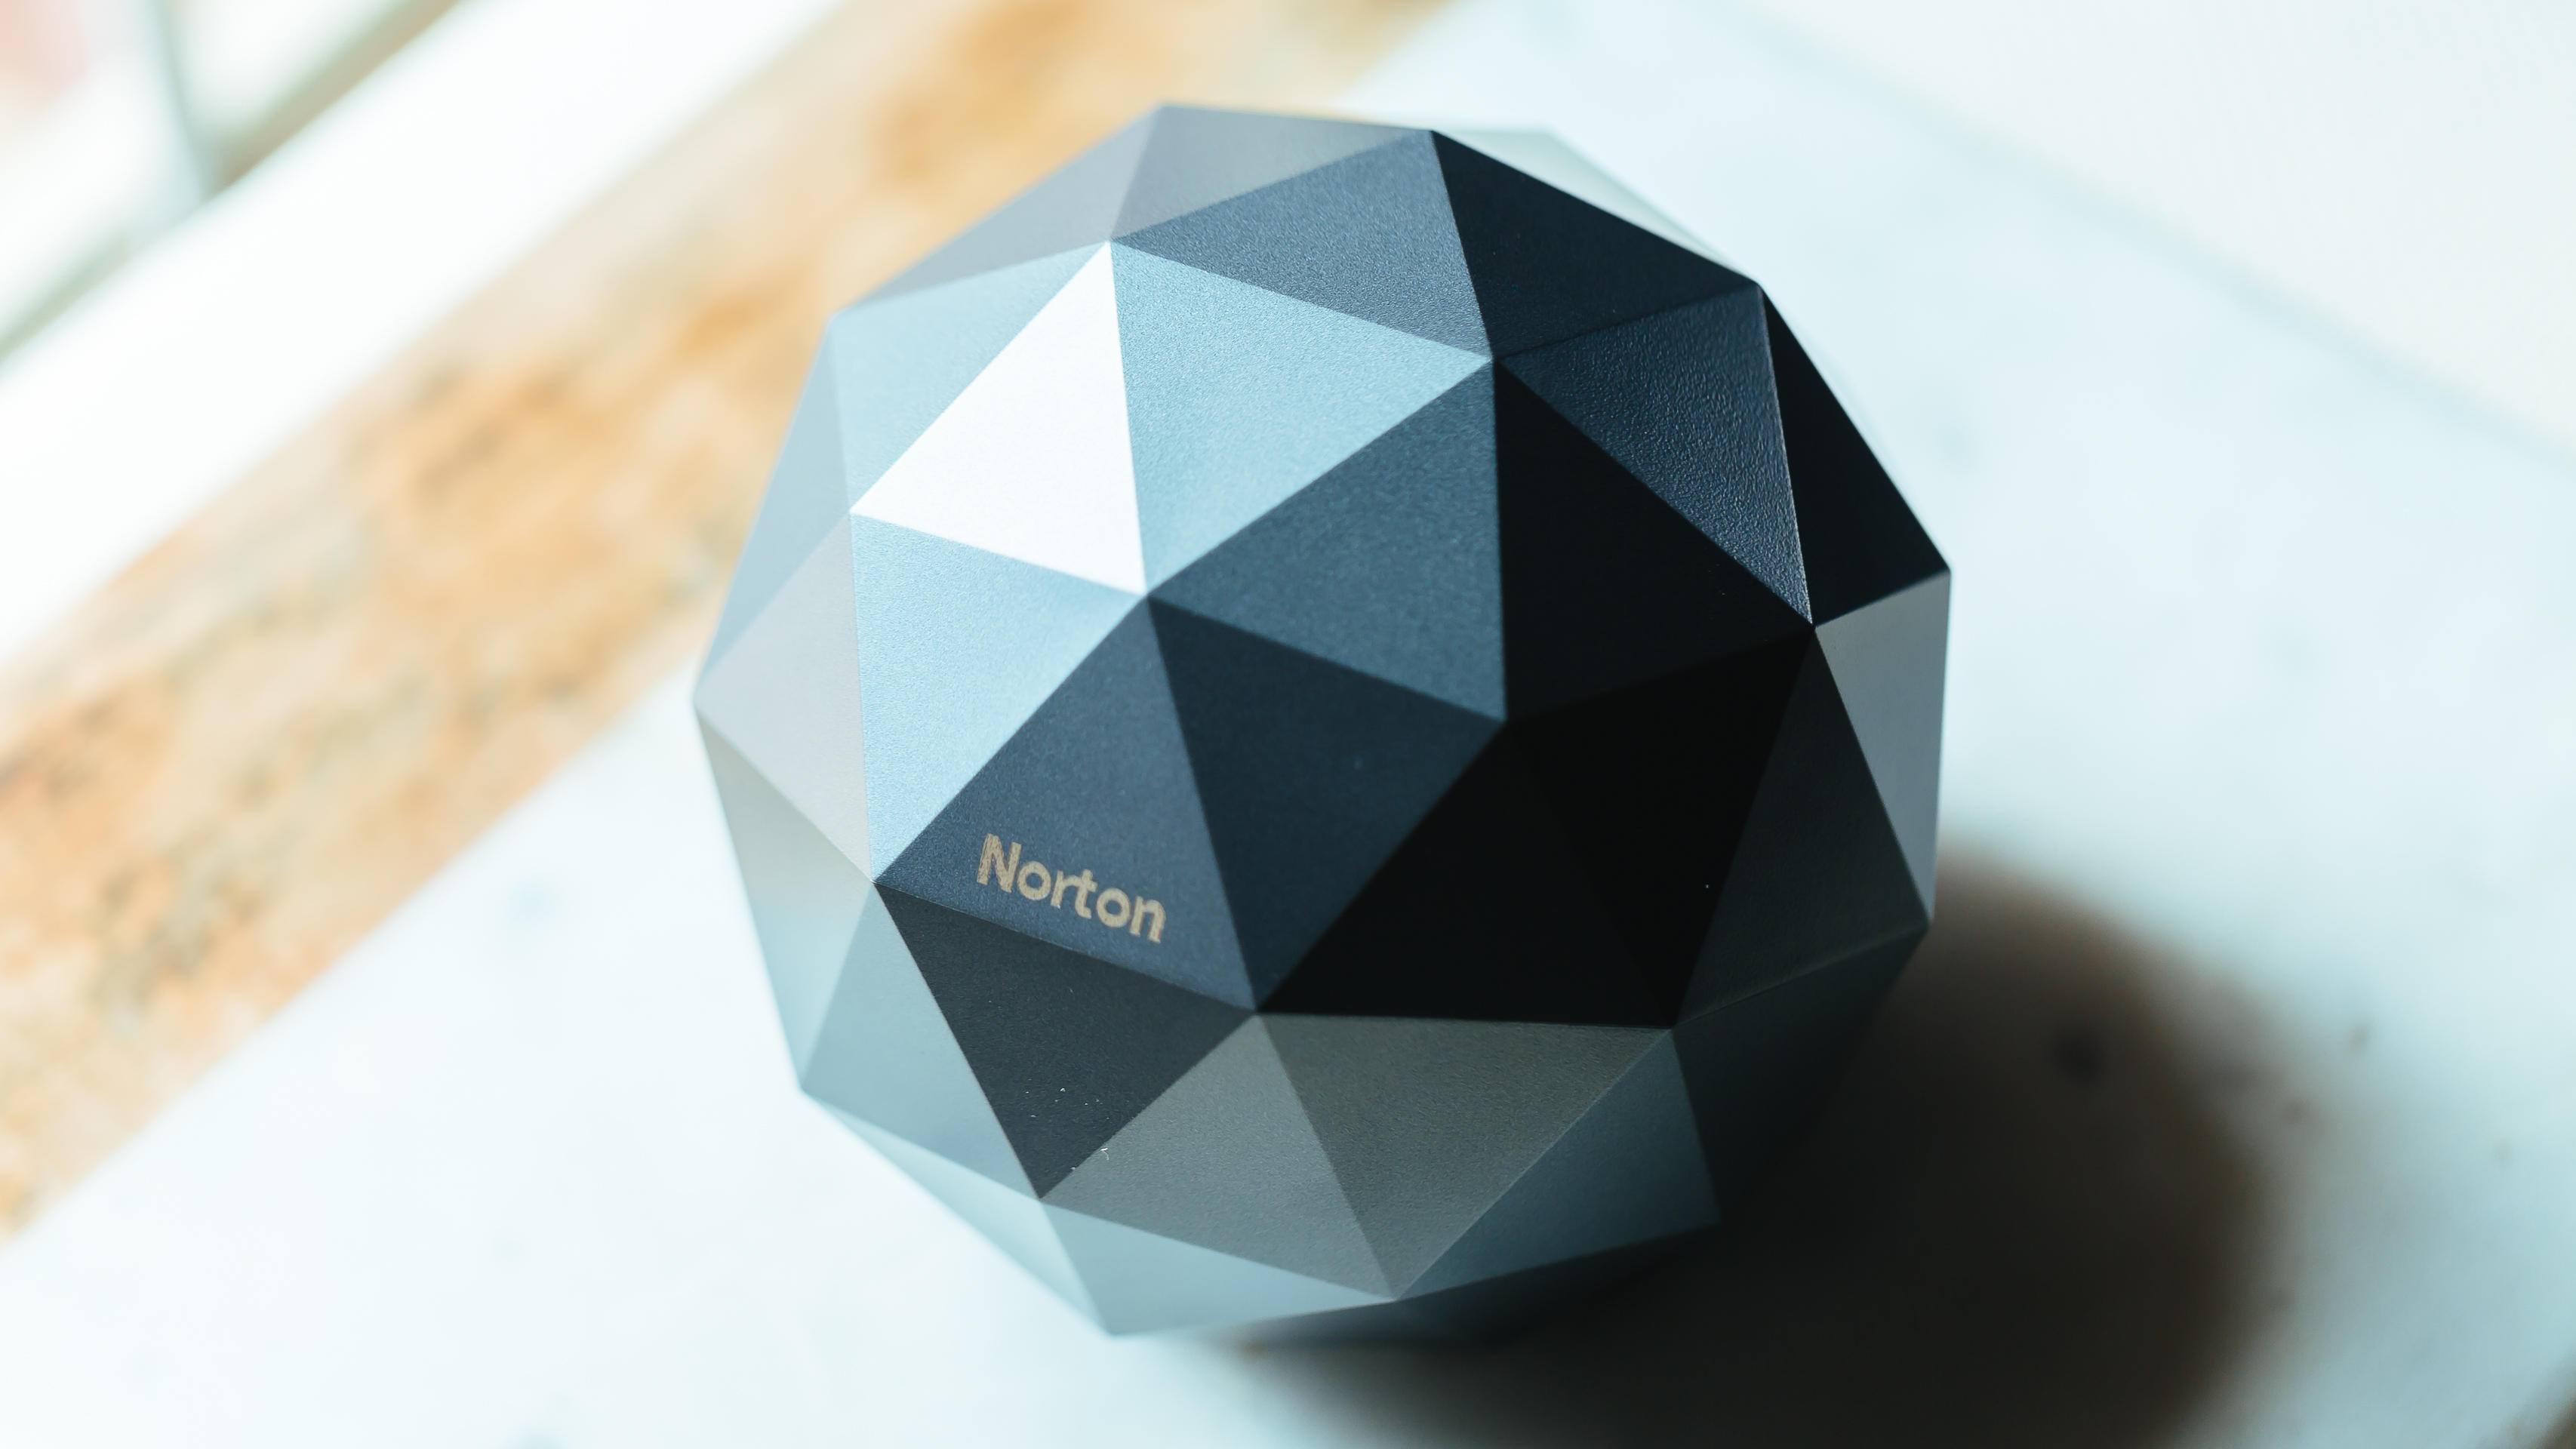 norton-core-router-product-photos-2